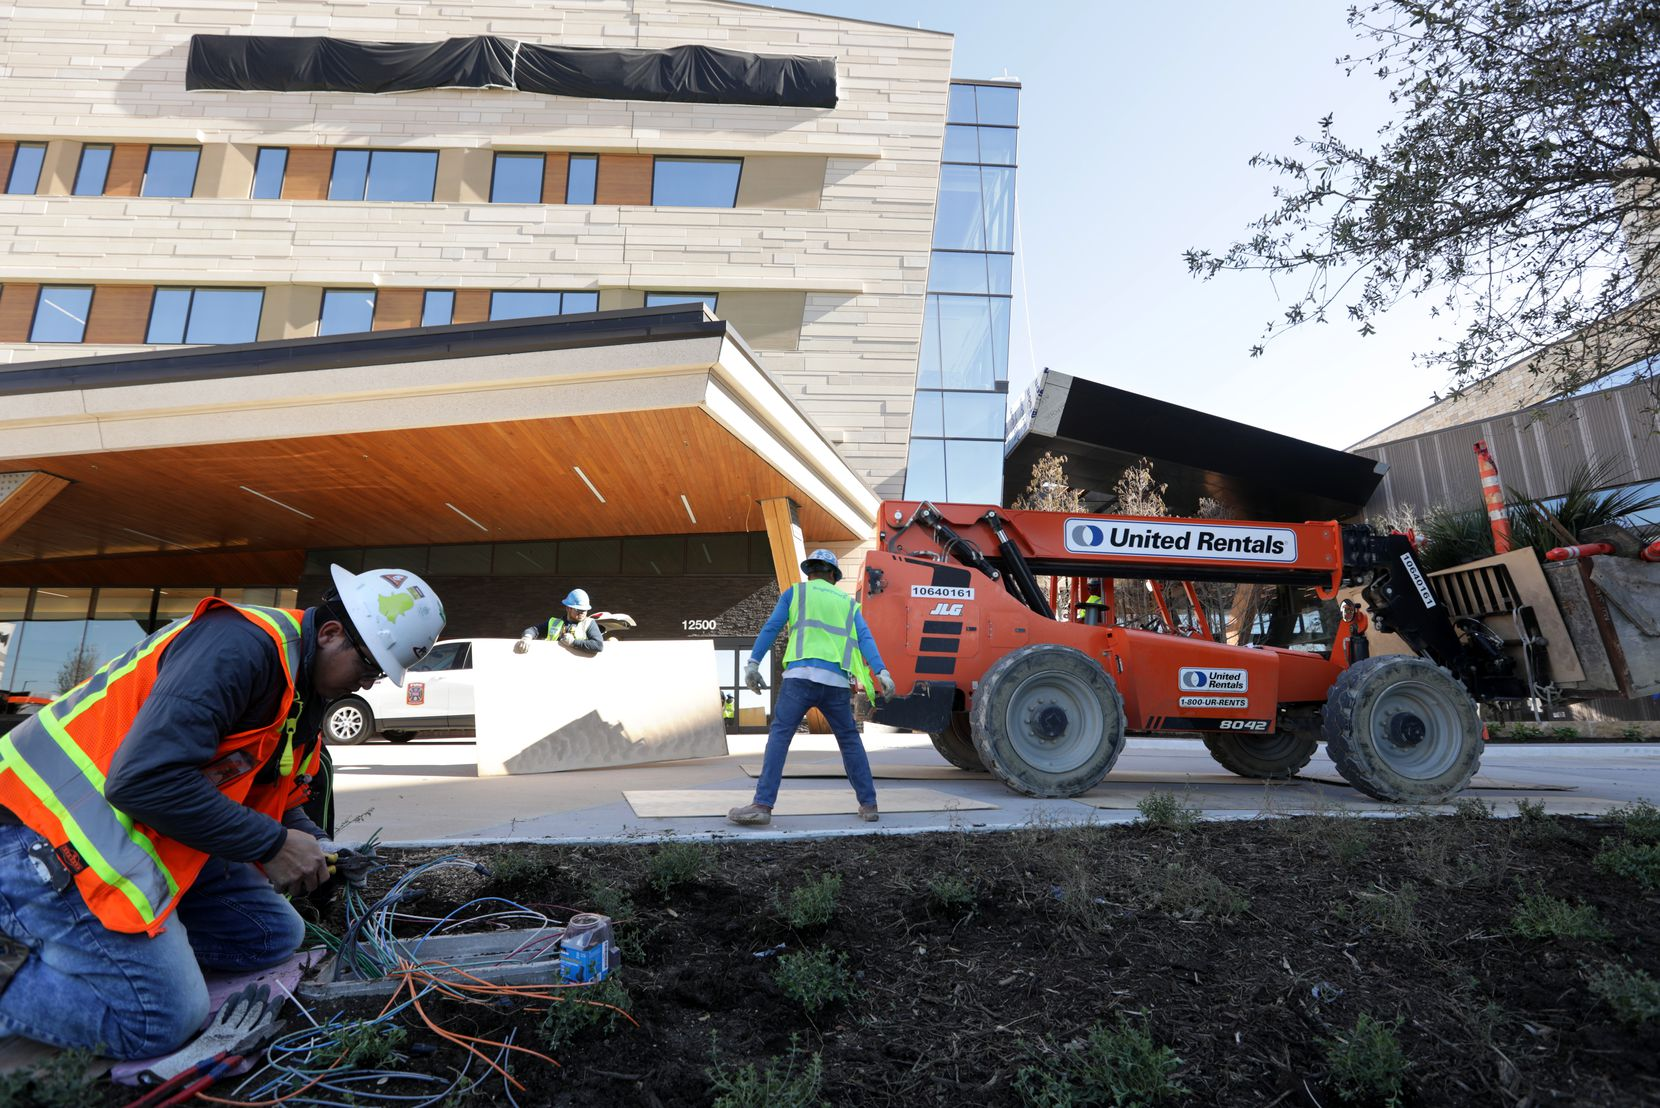 Crews complete exterior work at Texas Health Frisco, set to open this month. The campus includes a 325,000-square-foot hospital, a 125,000-square-foot medical office building and a 90,000-square-foot specialty clinic.